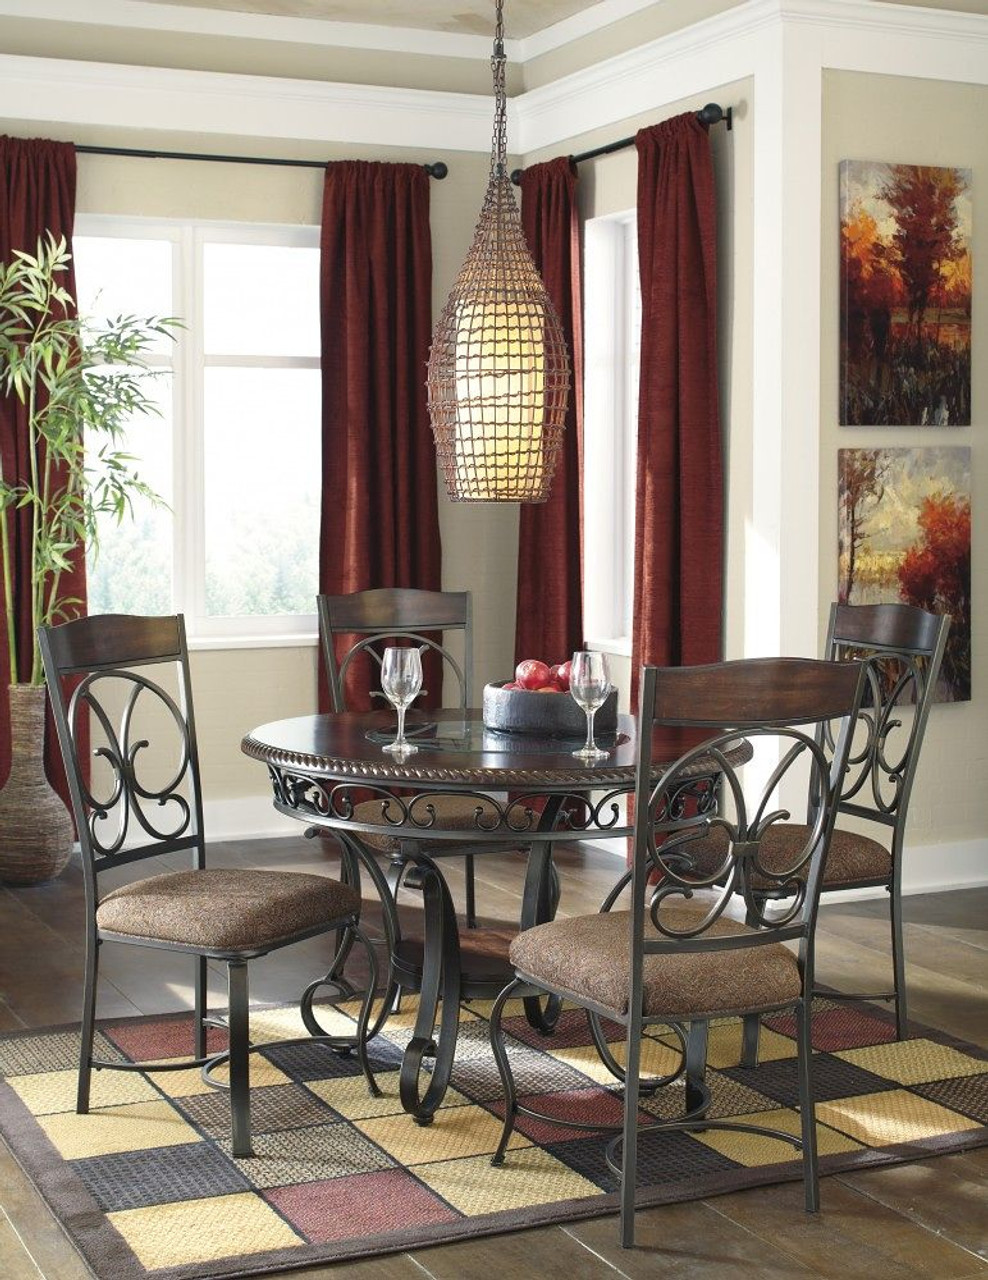 al s chairs and tables oak adirondack the glambrey 5 pc round dining room table 4 upholstered side